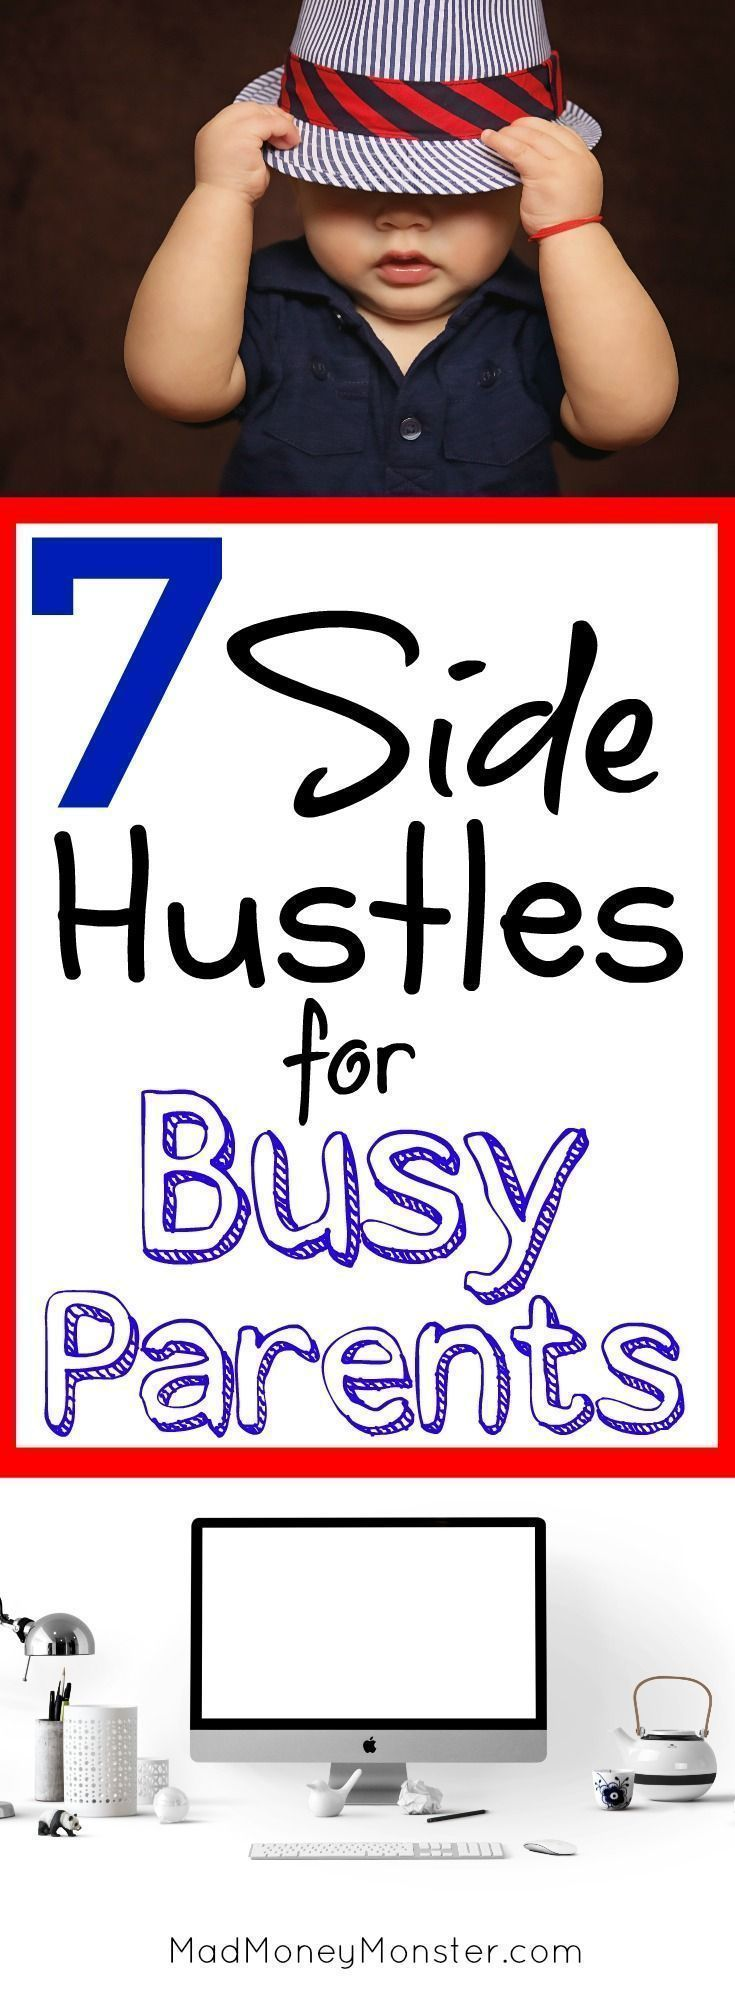 7 Quick Side Hustles Busy Parents Can Start This Weekend – Make Money Today